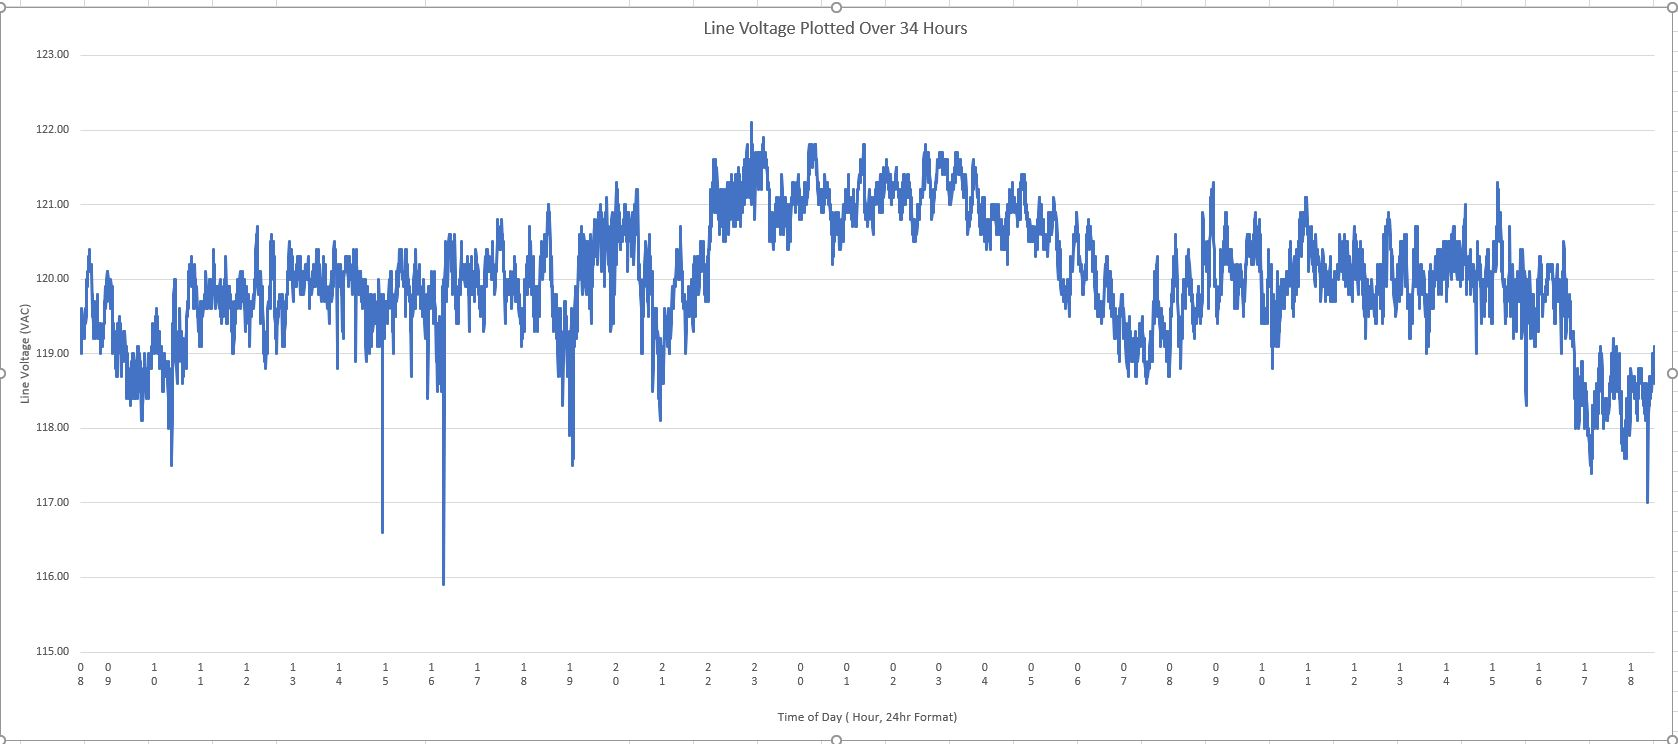 Local AC Line Voltage vs Time over 34 Hour Period